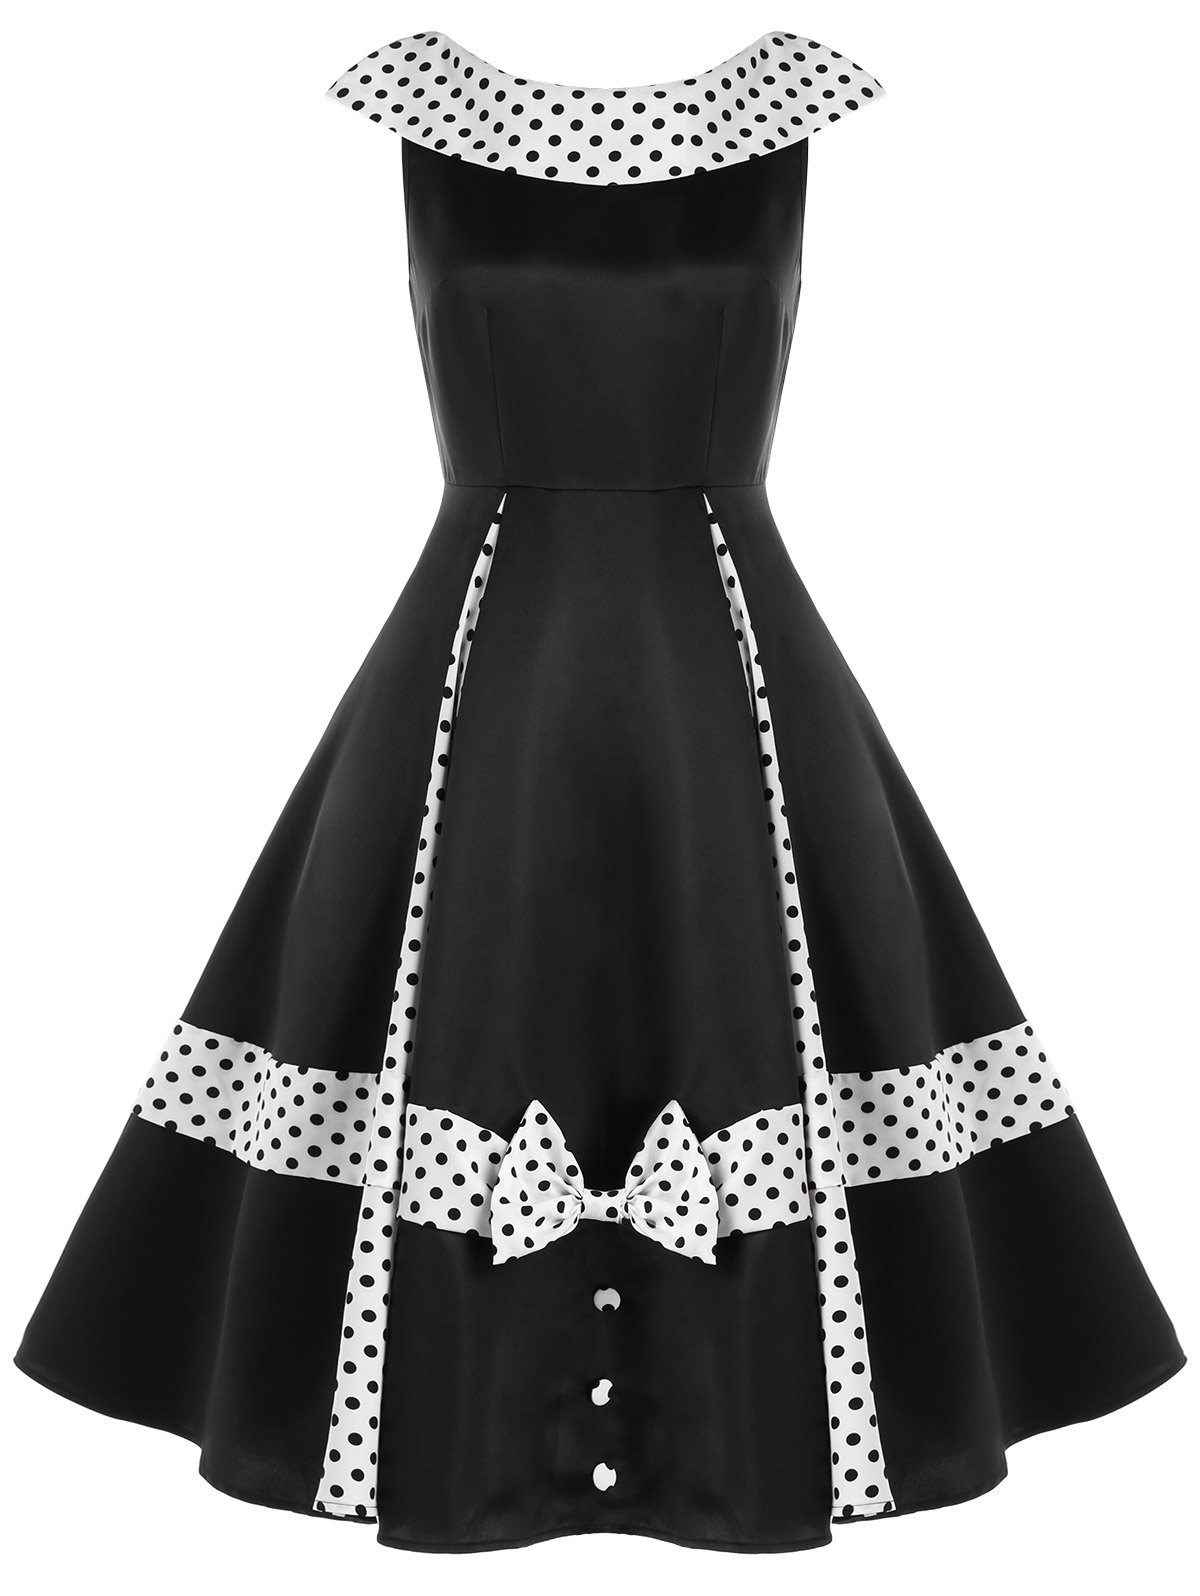 Unique Sleeveless Polka Dot Retro Dress